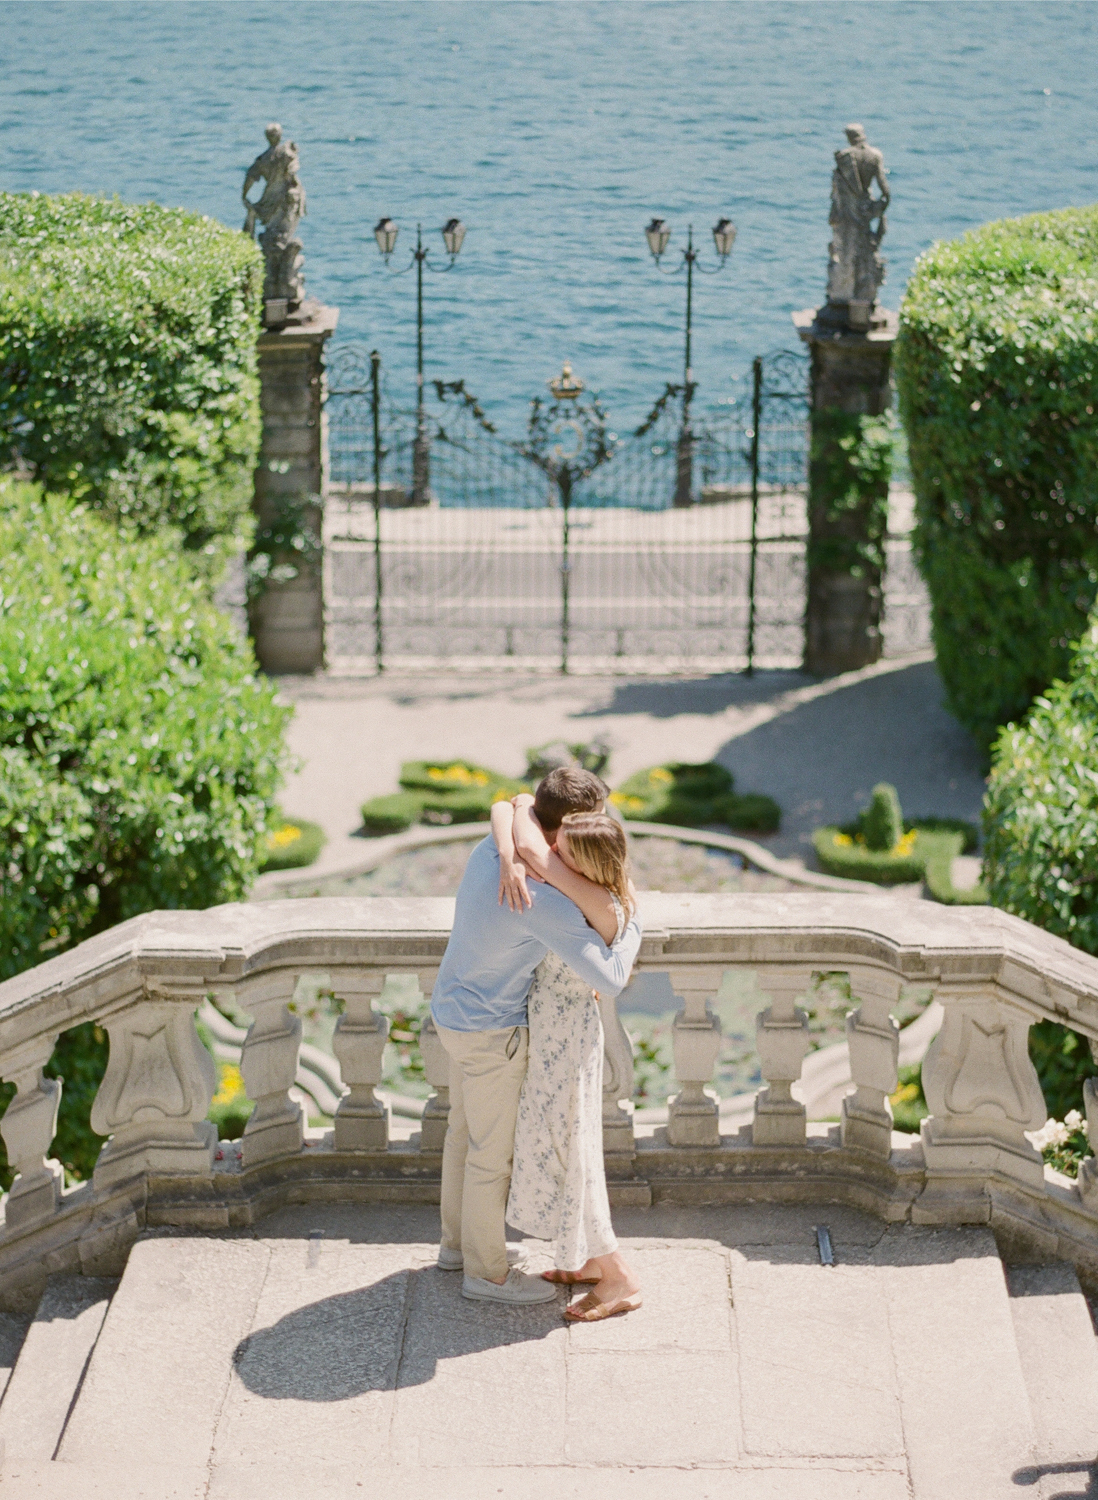 lake como film wedding photographer italy wedding photographer nikol bodnarova photography 23.JPG